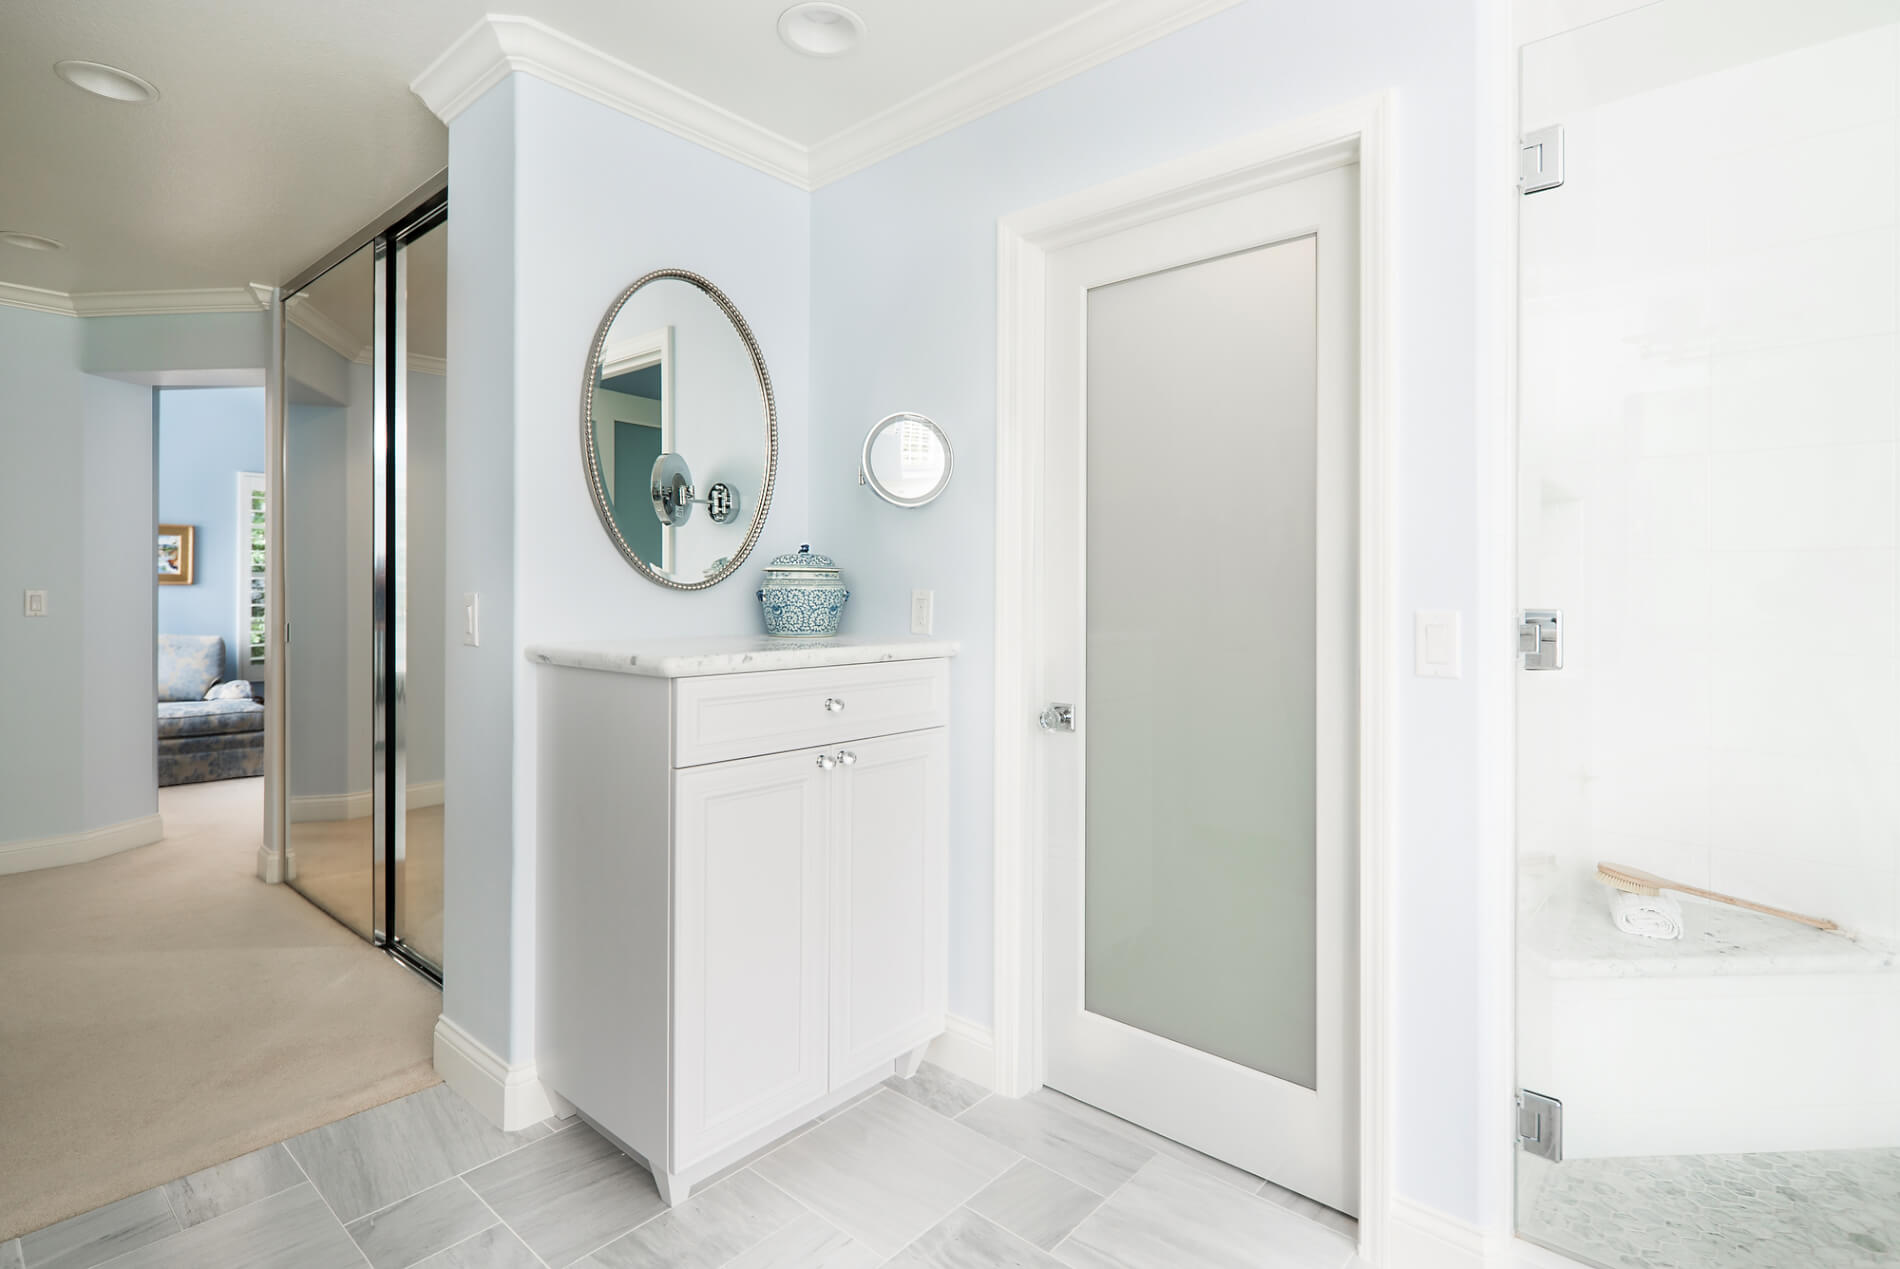 Home Remodeling Companies, Residential Contractors, Bathroom Remodeling Costs